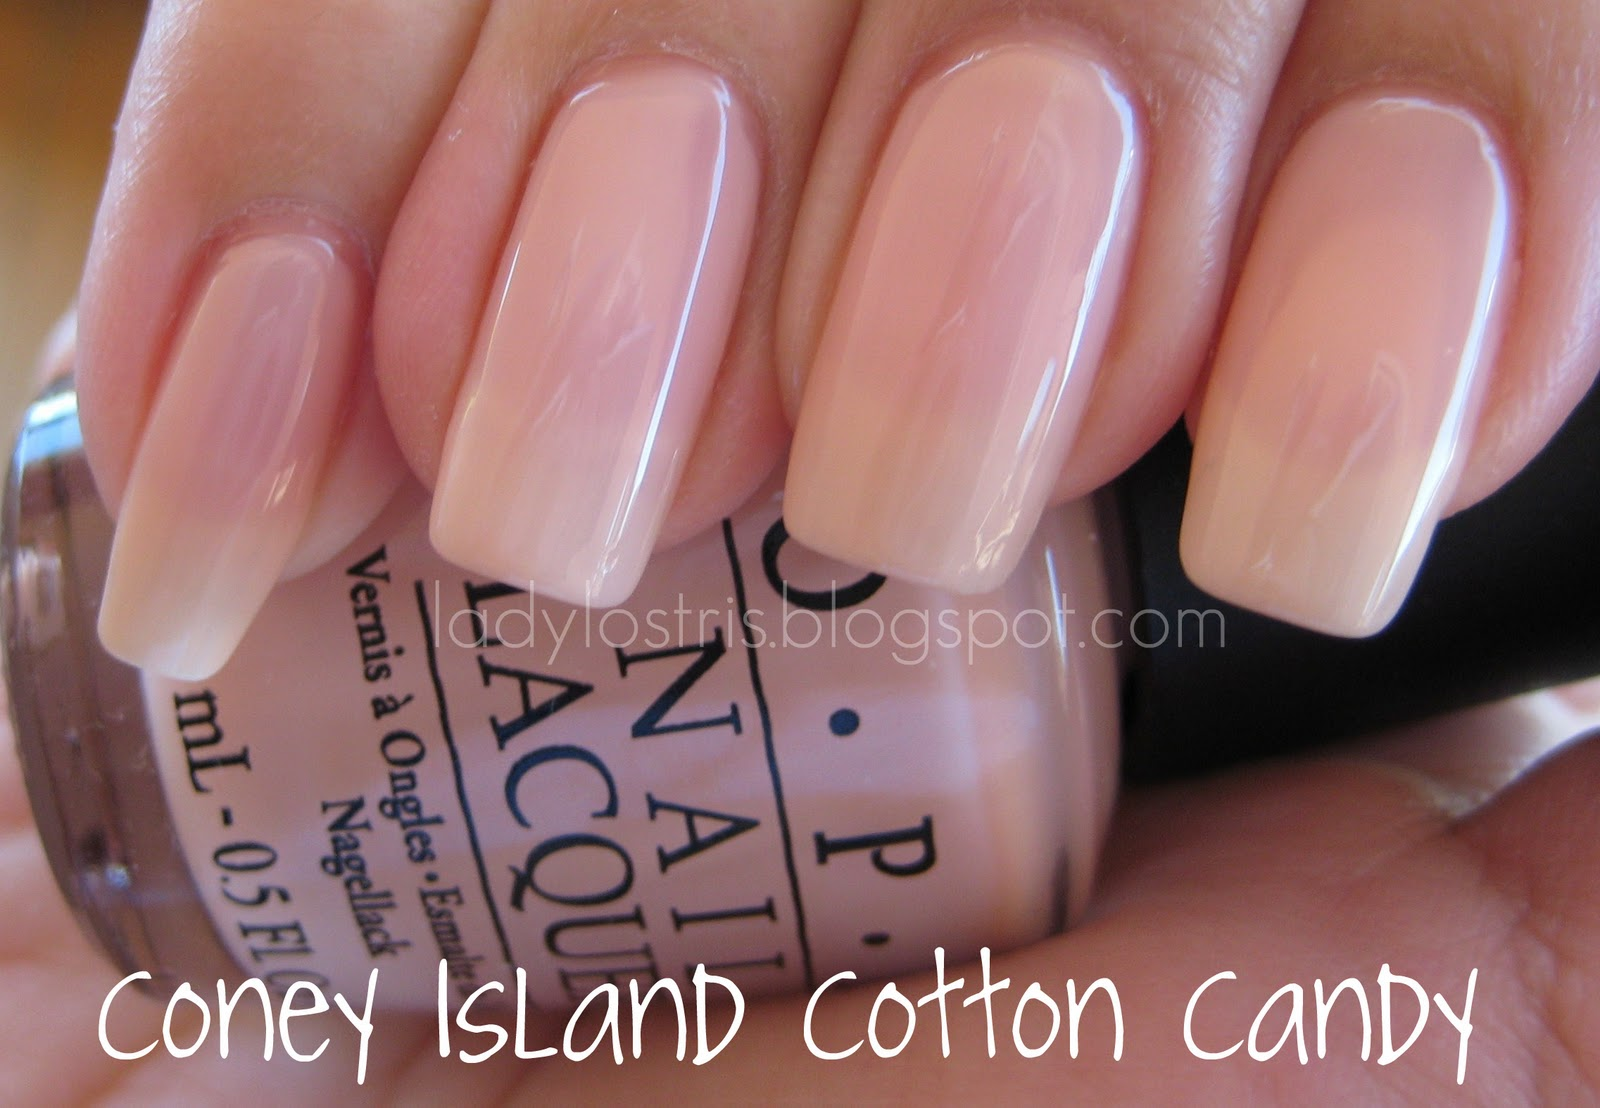 Lady Lostris Beauty My First Opi Coney Island Cotton Candy